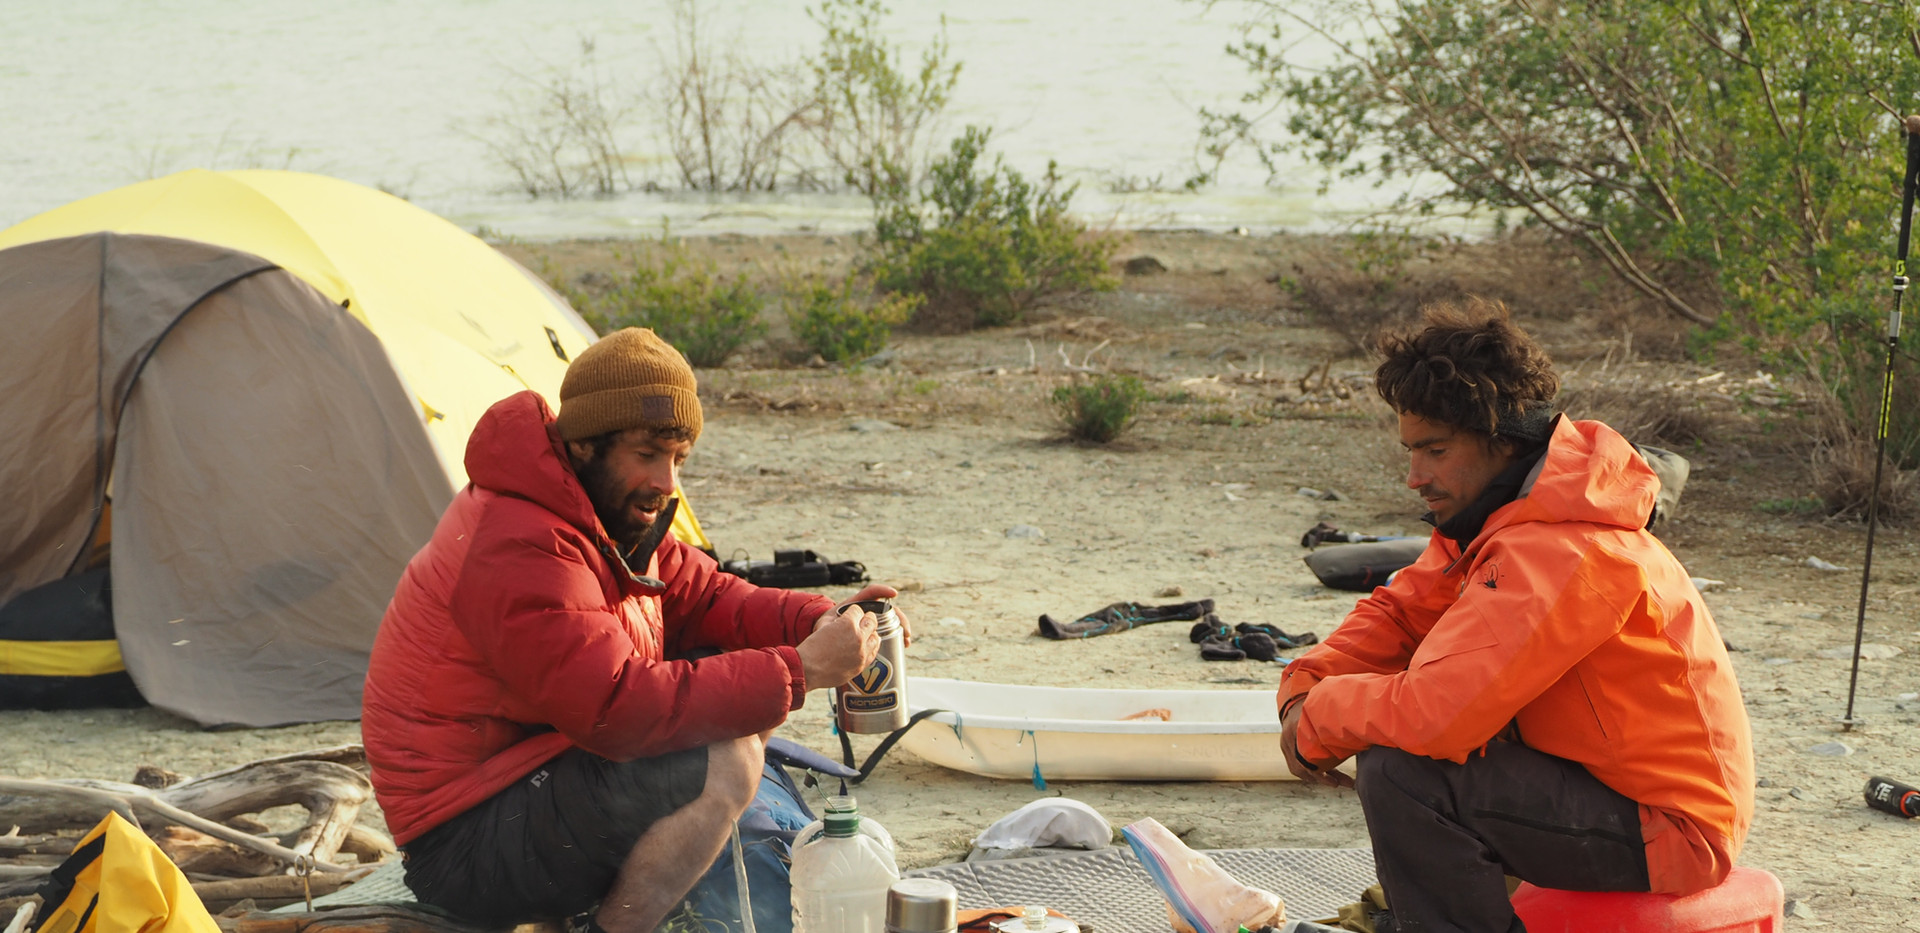 Camping on the shore of an unnamed lake